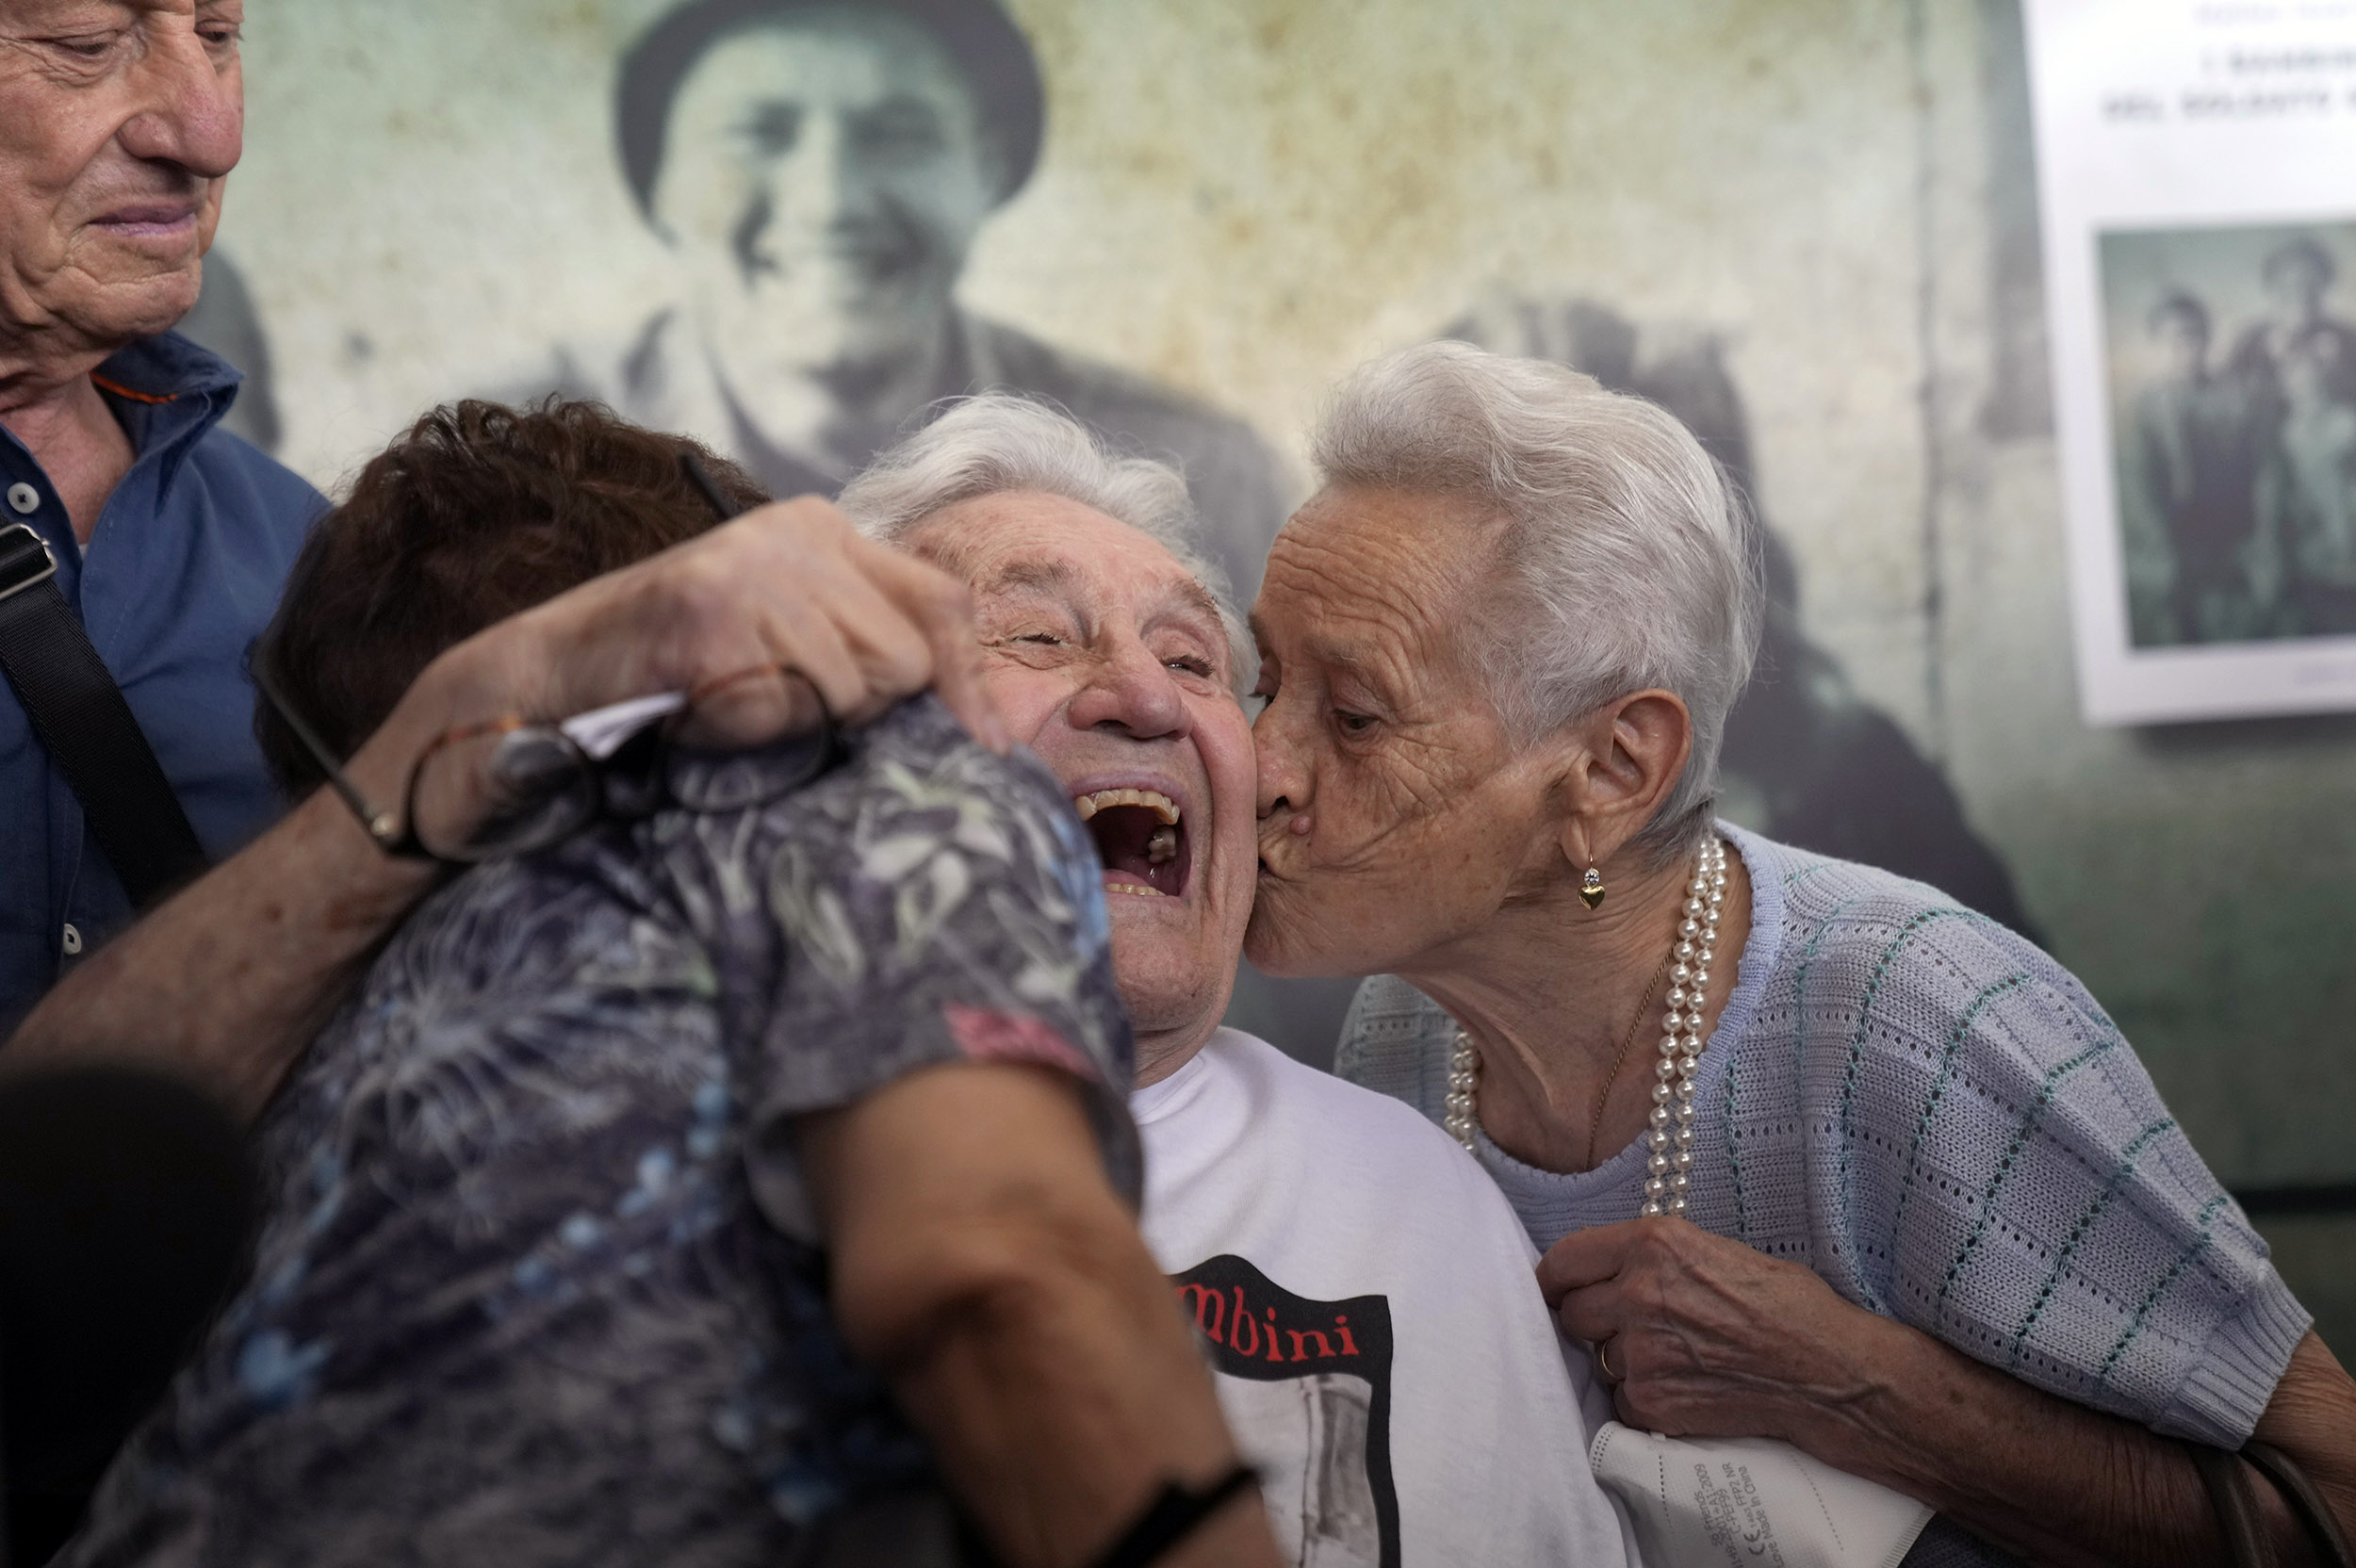 Social media leads WWII veteran to reunite with Italians he saved as children